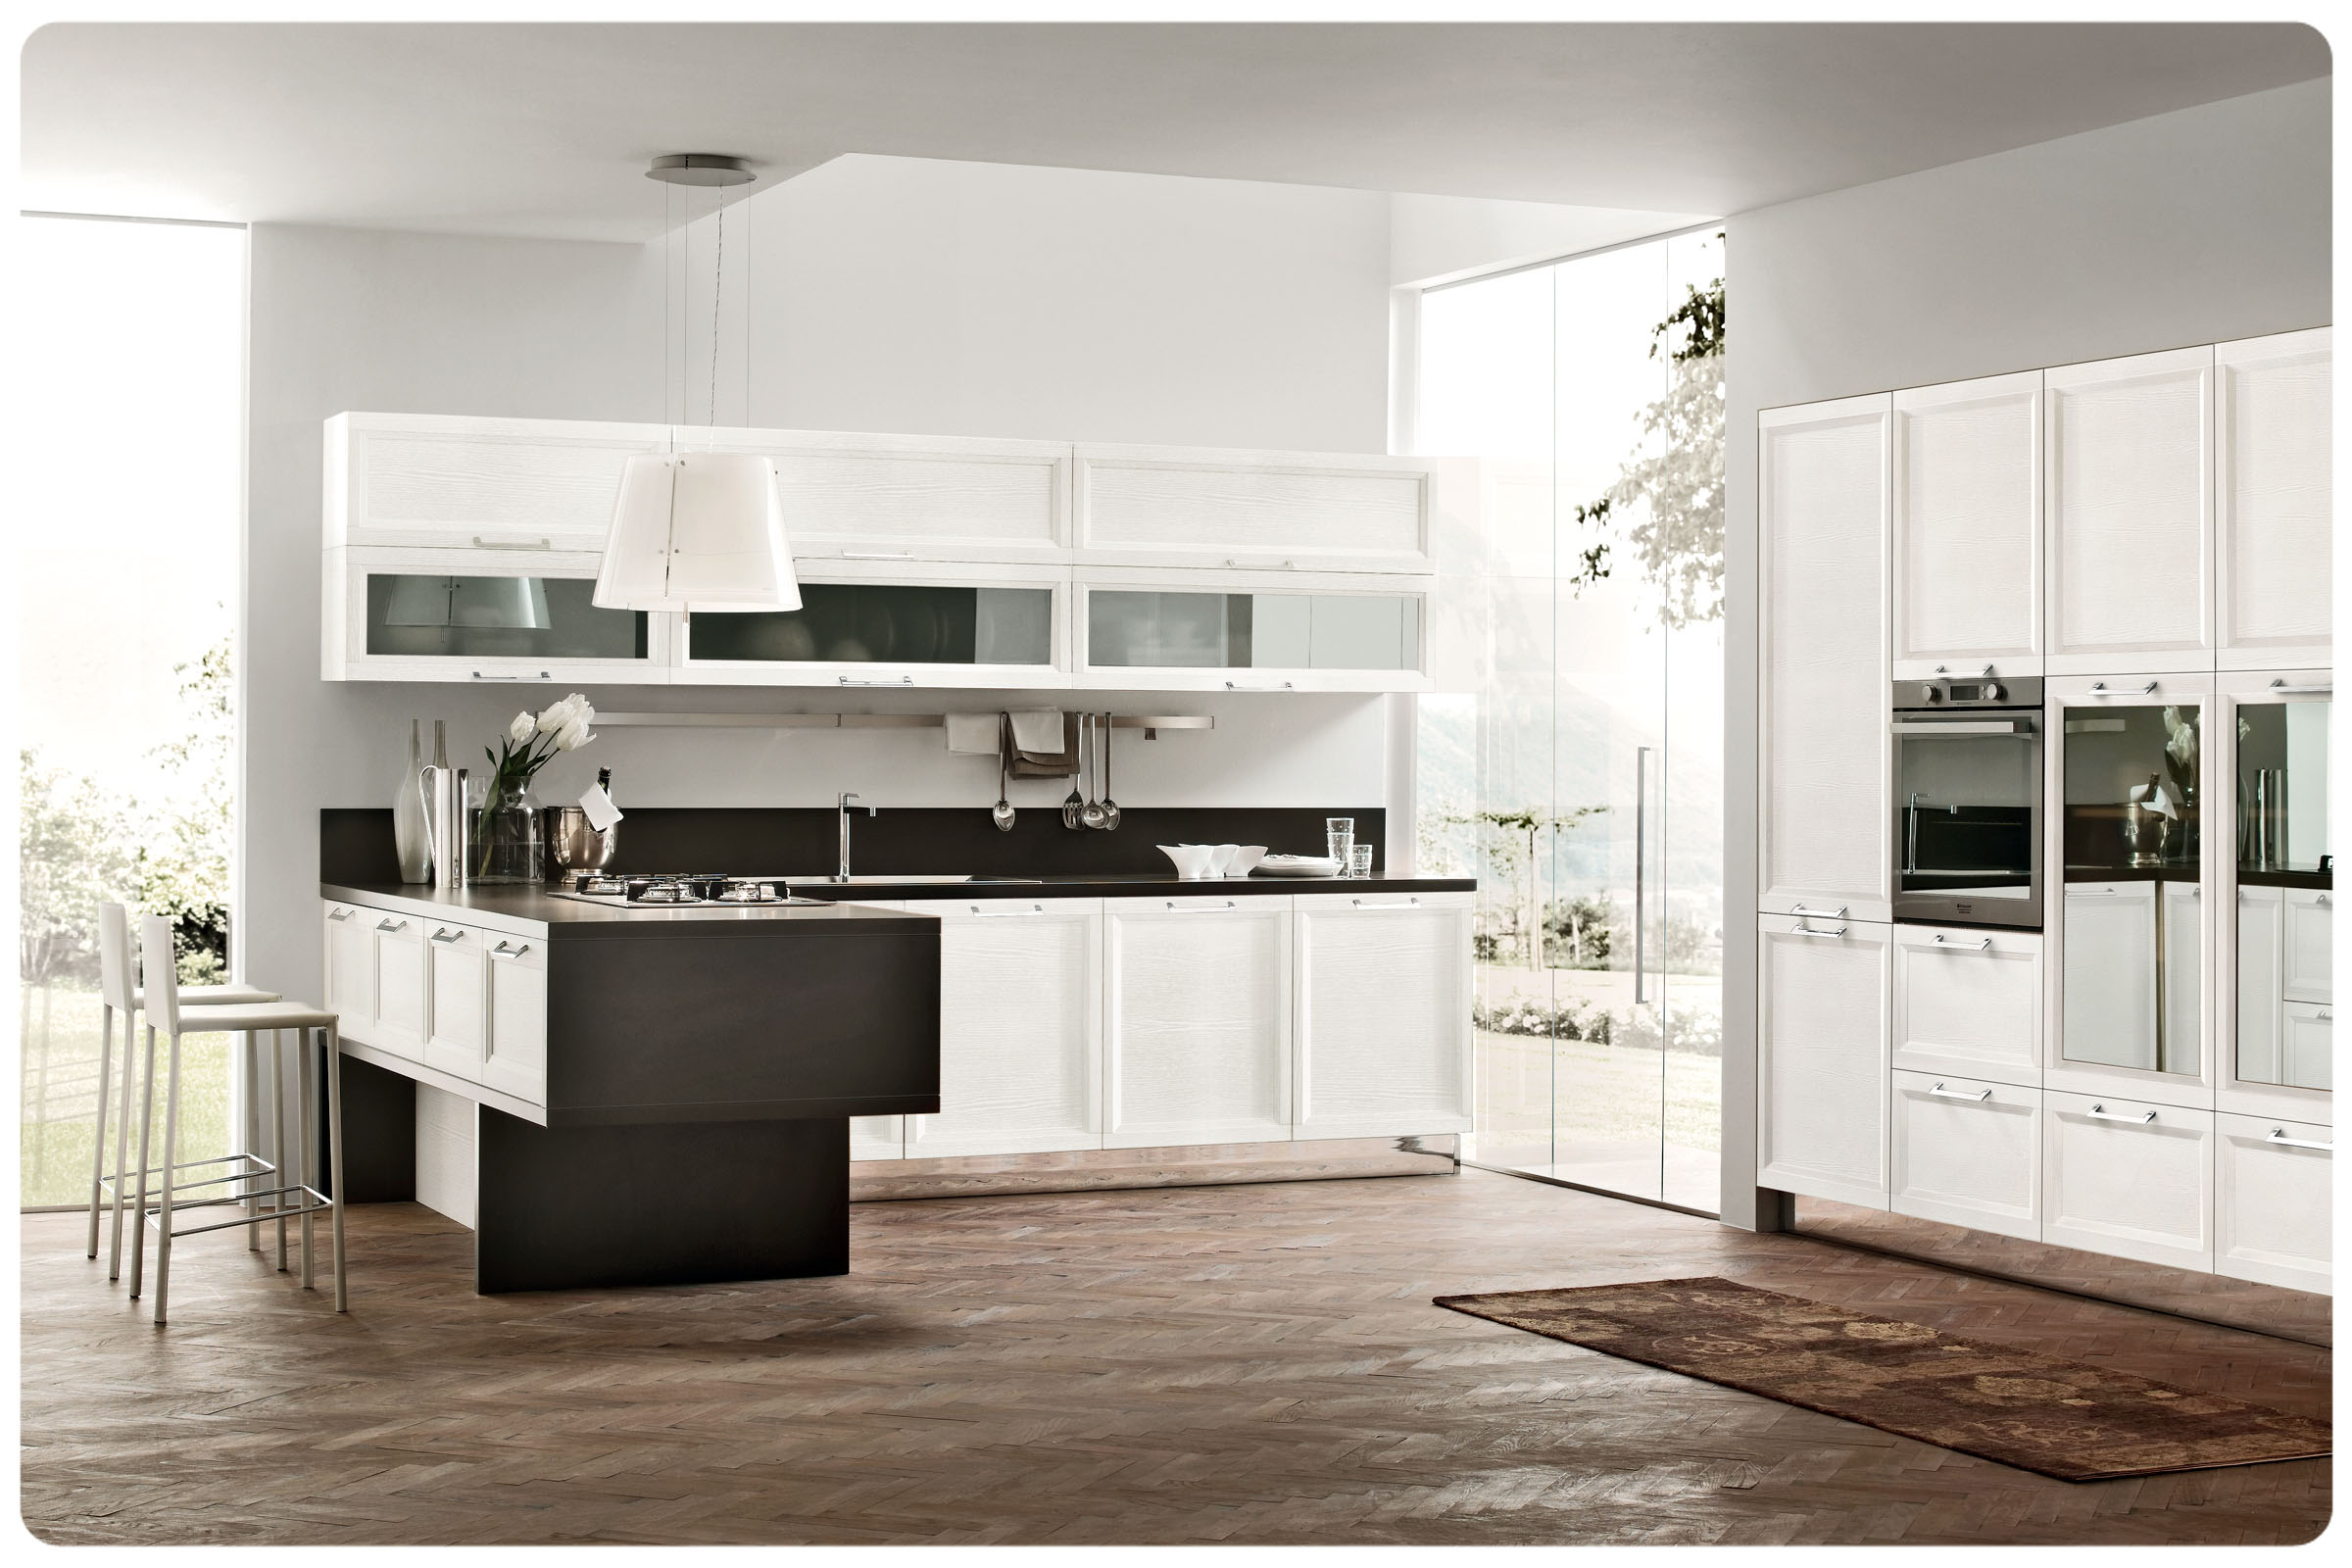 Awesome Cucine Economiche Milano Images - bakeroffroad.us ...